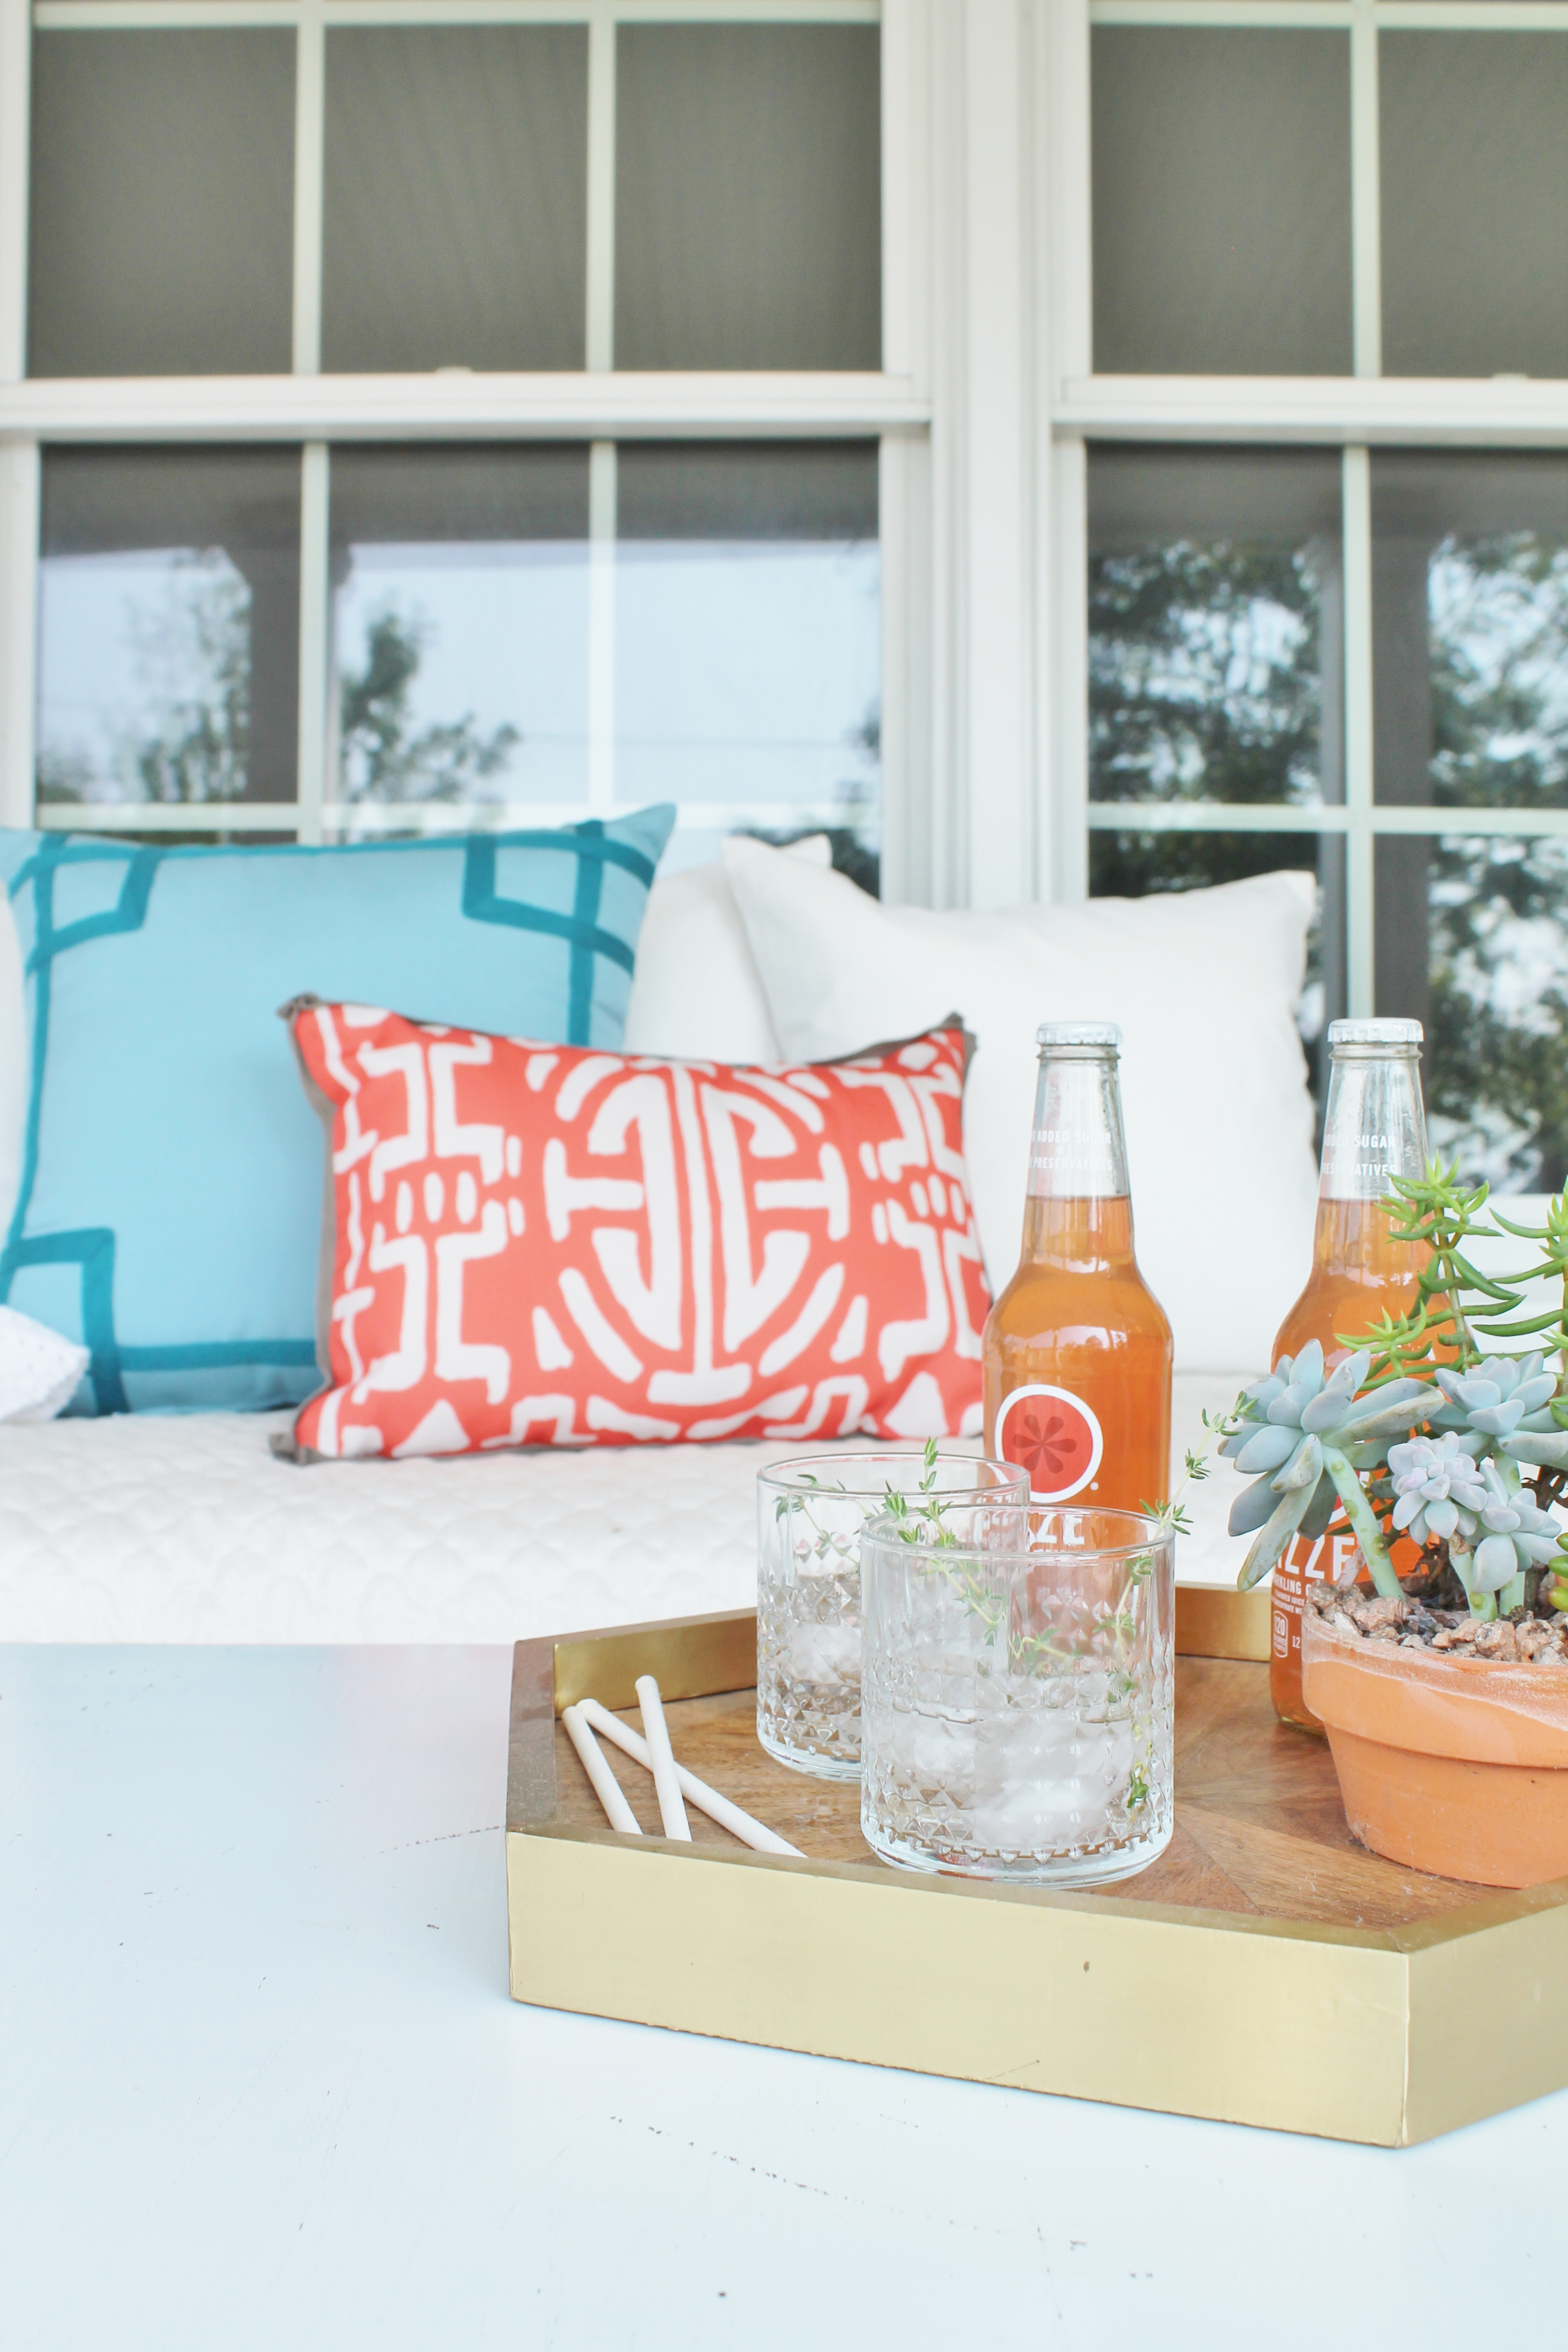 Early Fall Rustic Glam Porch City Farmhouse